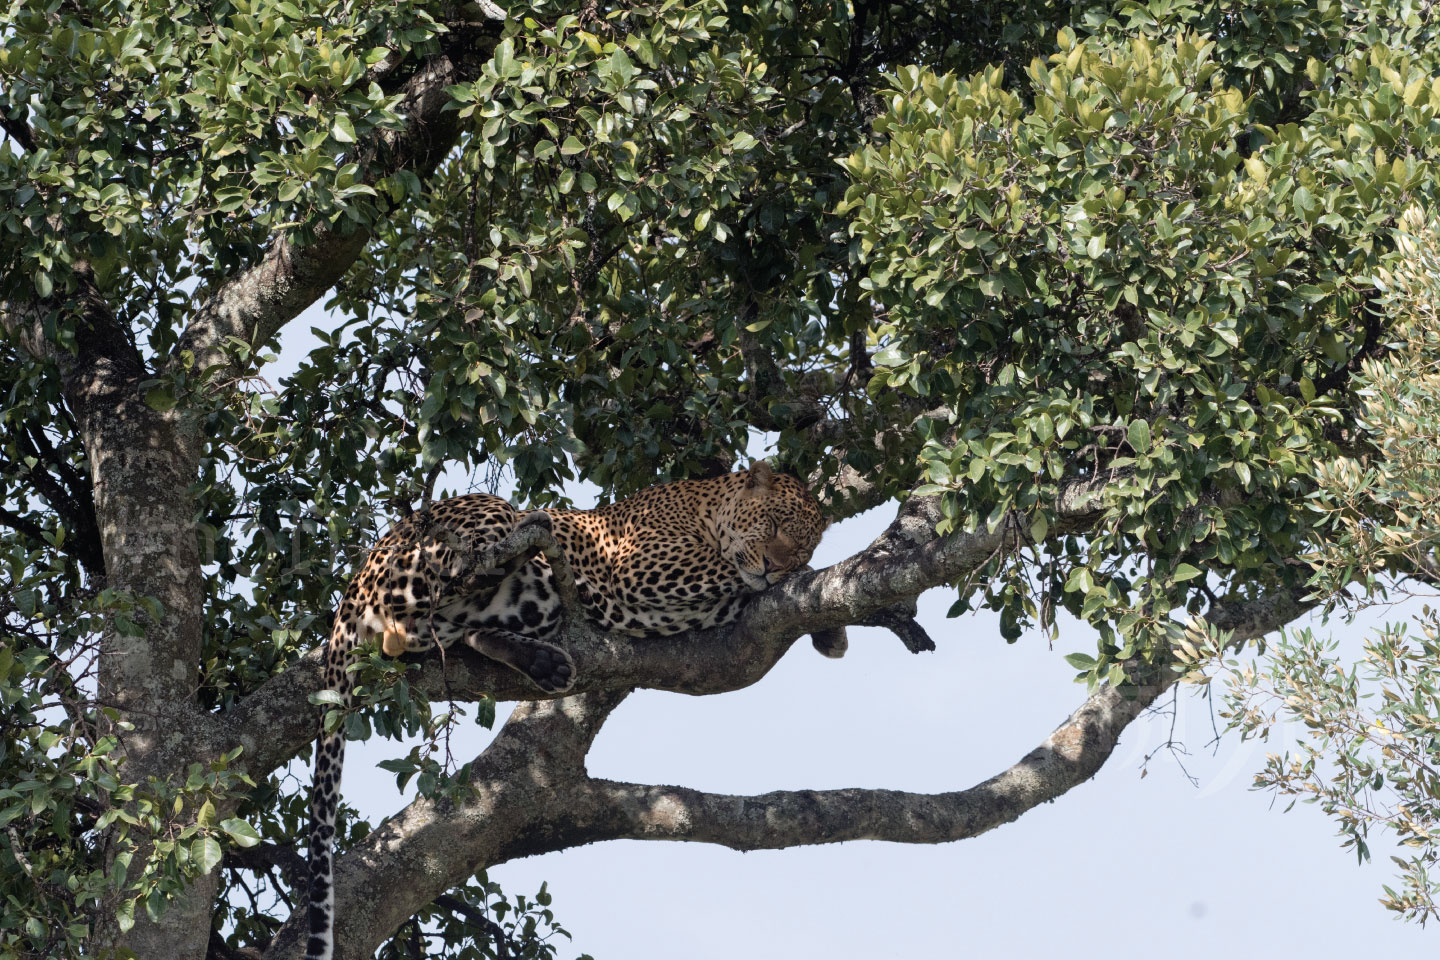 Leopard - Kenya Wildlife Safari